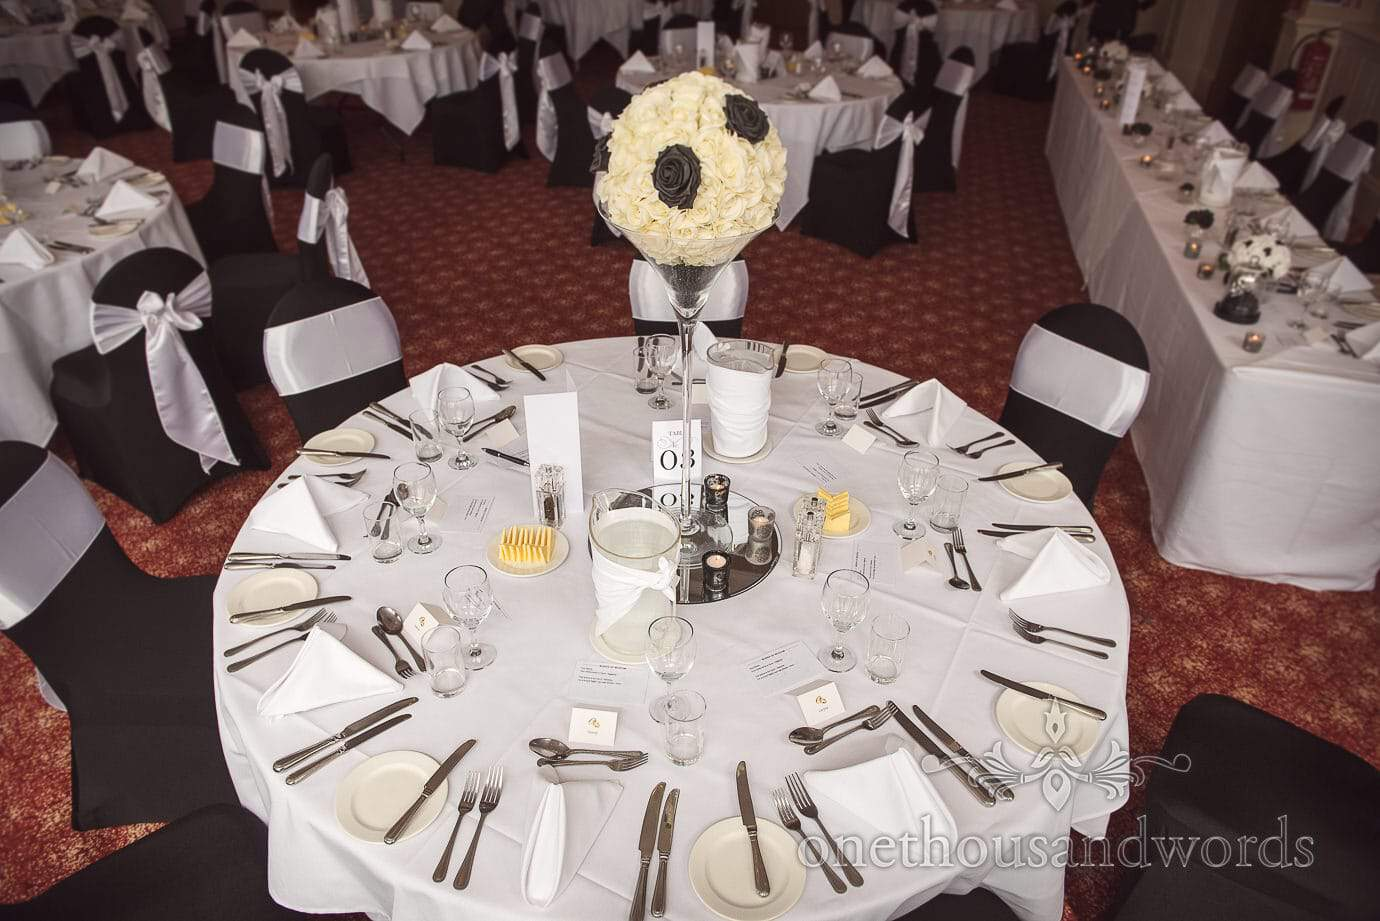 Black and white wedding table decorations and flowers at rock and roll wedding